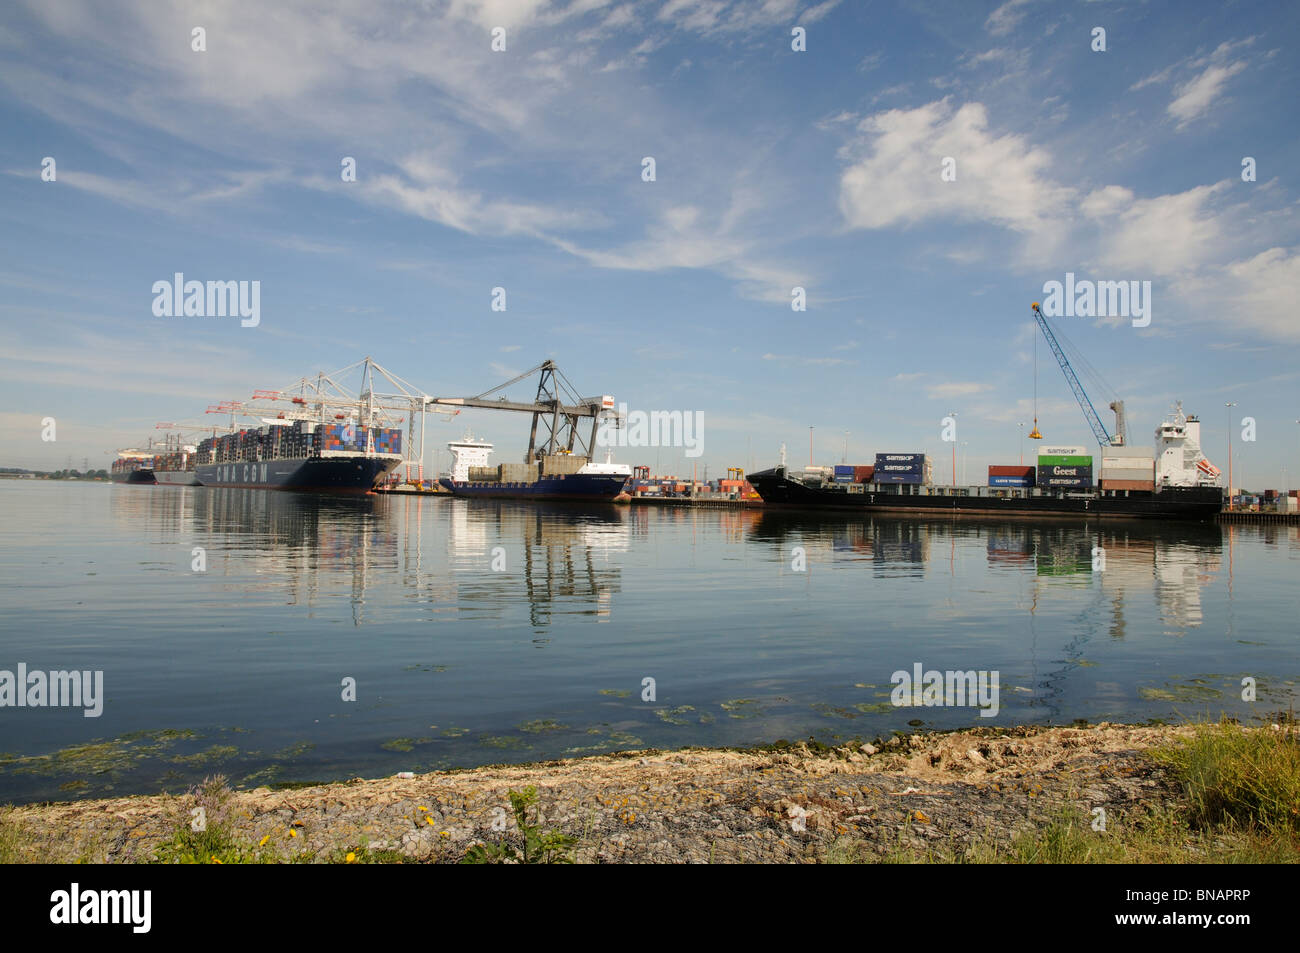 Ships on the quayside at DP World ABP Southampton England UK A large port in southern England - Stock Image